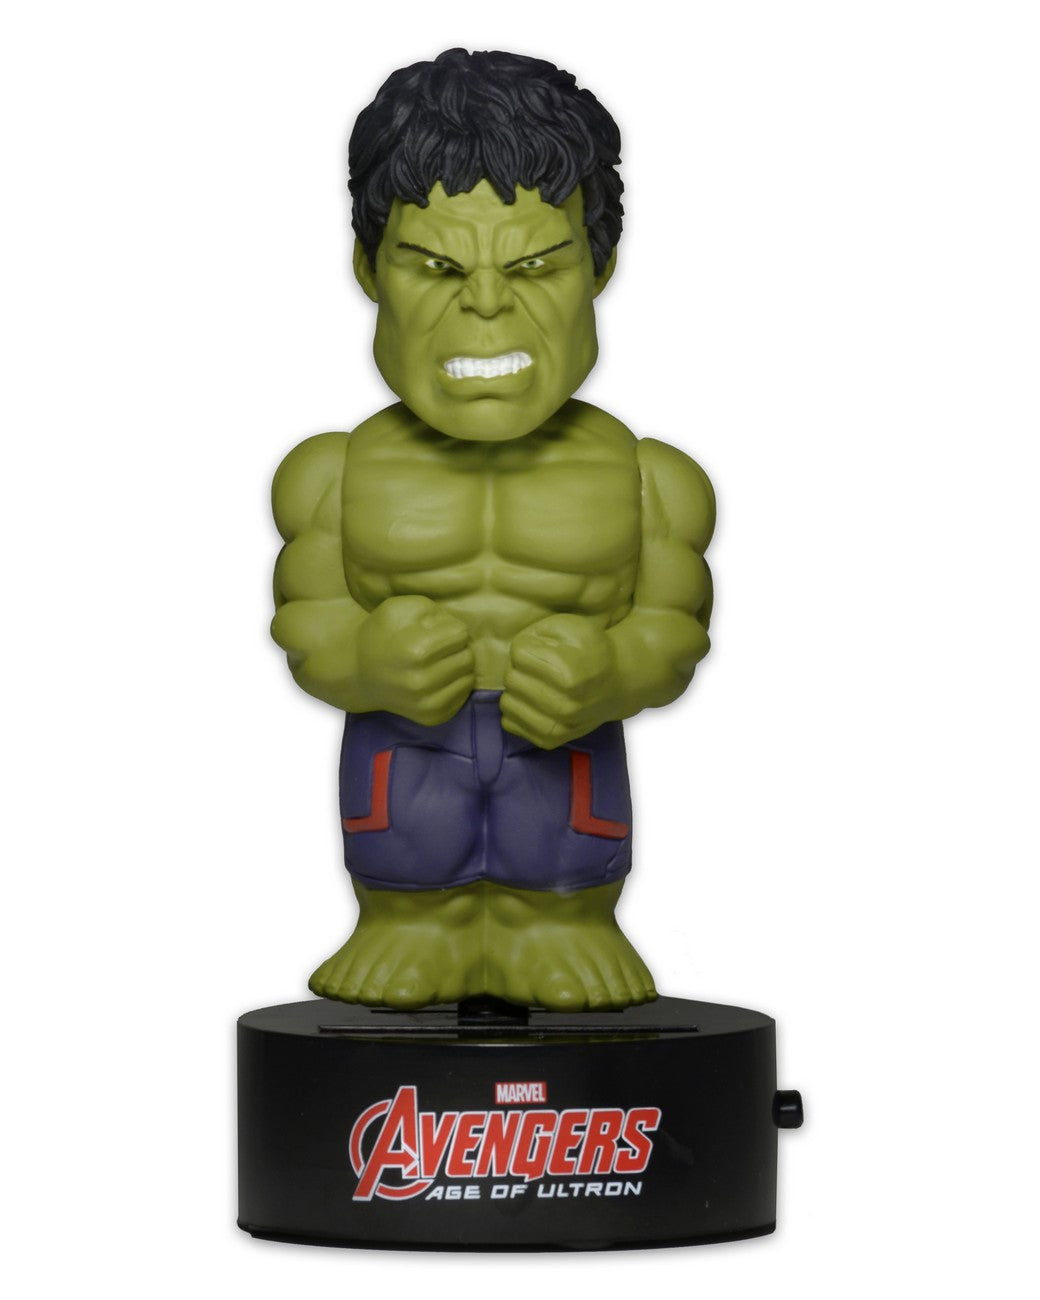 Avengers Age of Ultron Hulk Solar Powered Body Knocker by Neca -NECA - India - www.superherotoystore.com